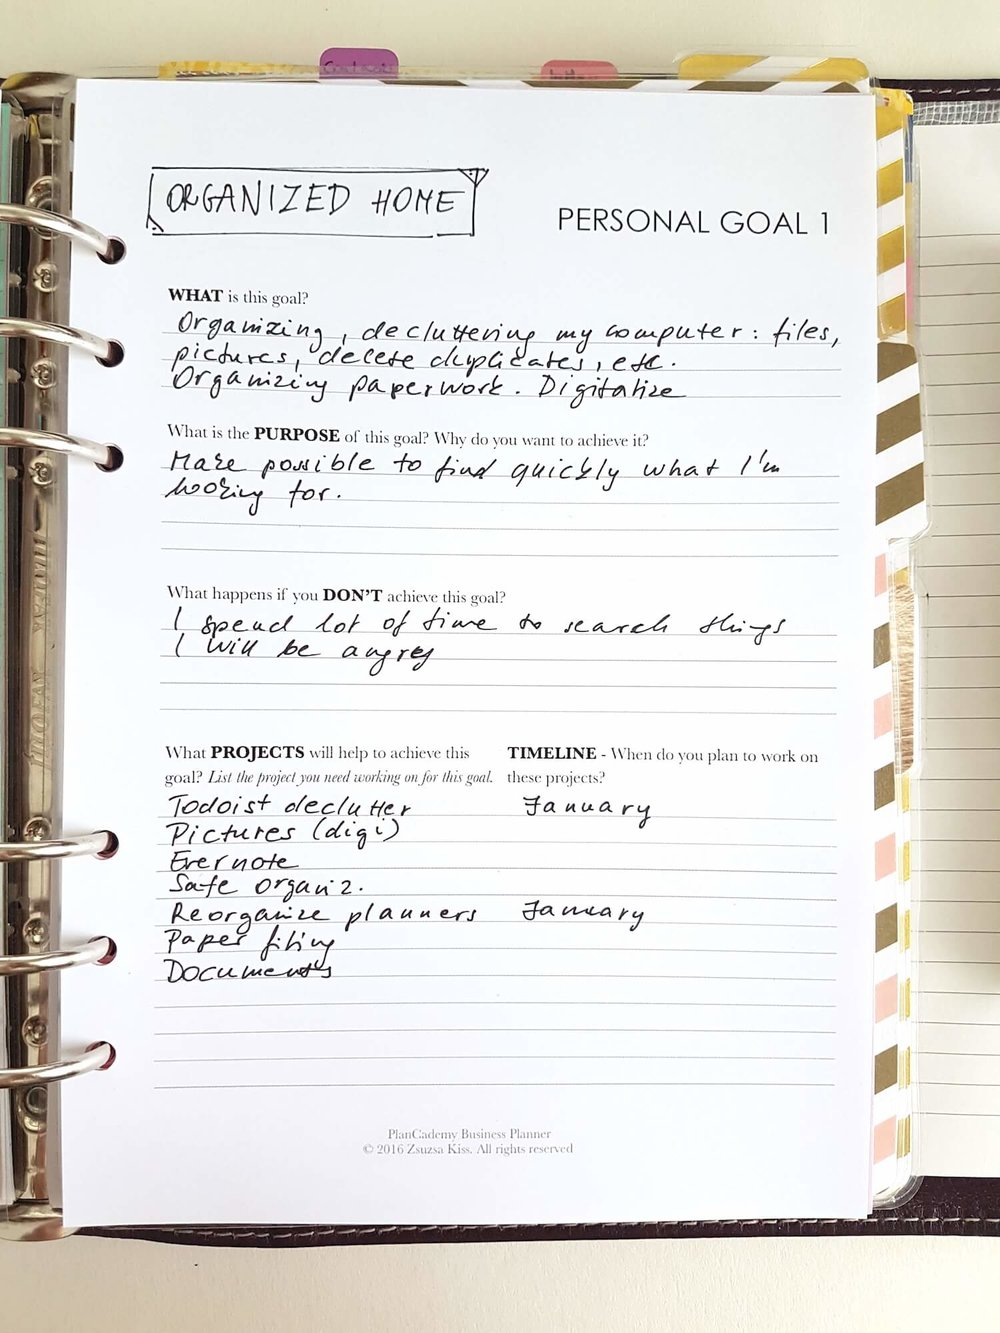 2017 Goals - And How To Make Them Happen - Goal Planner.